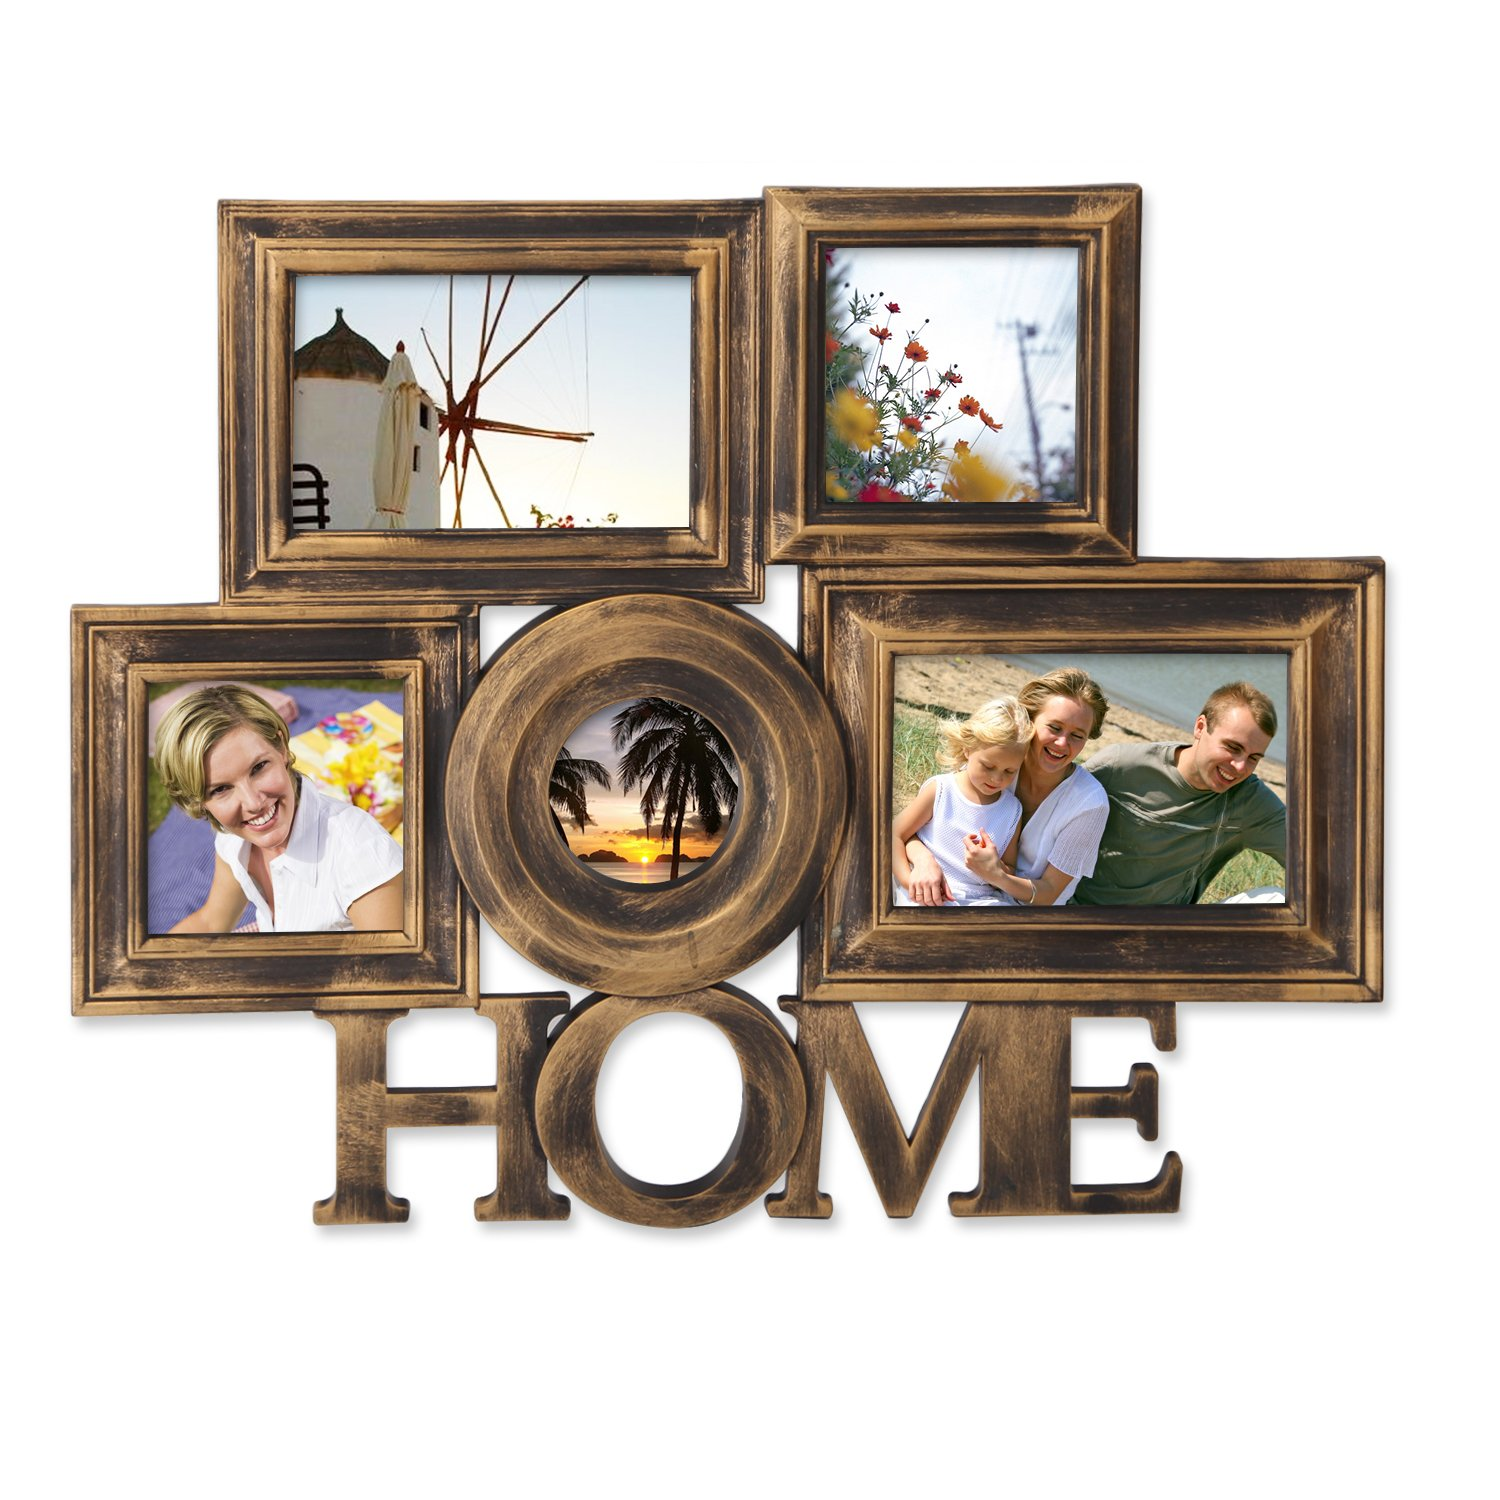 Adeco 5 Openings Anqtique Bronze ''Home'' Wall hanging Family Collage Picture Photo Frame - Made to Display Two 4x6, Two 4x4, One 3x3 Photos